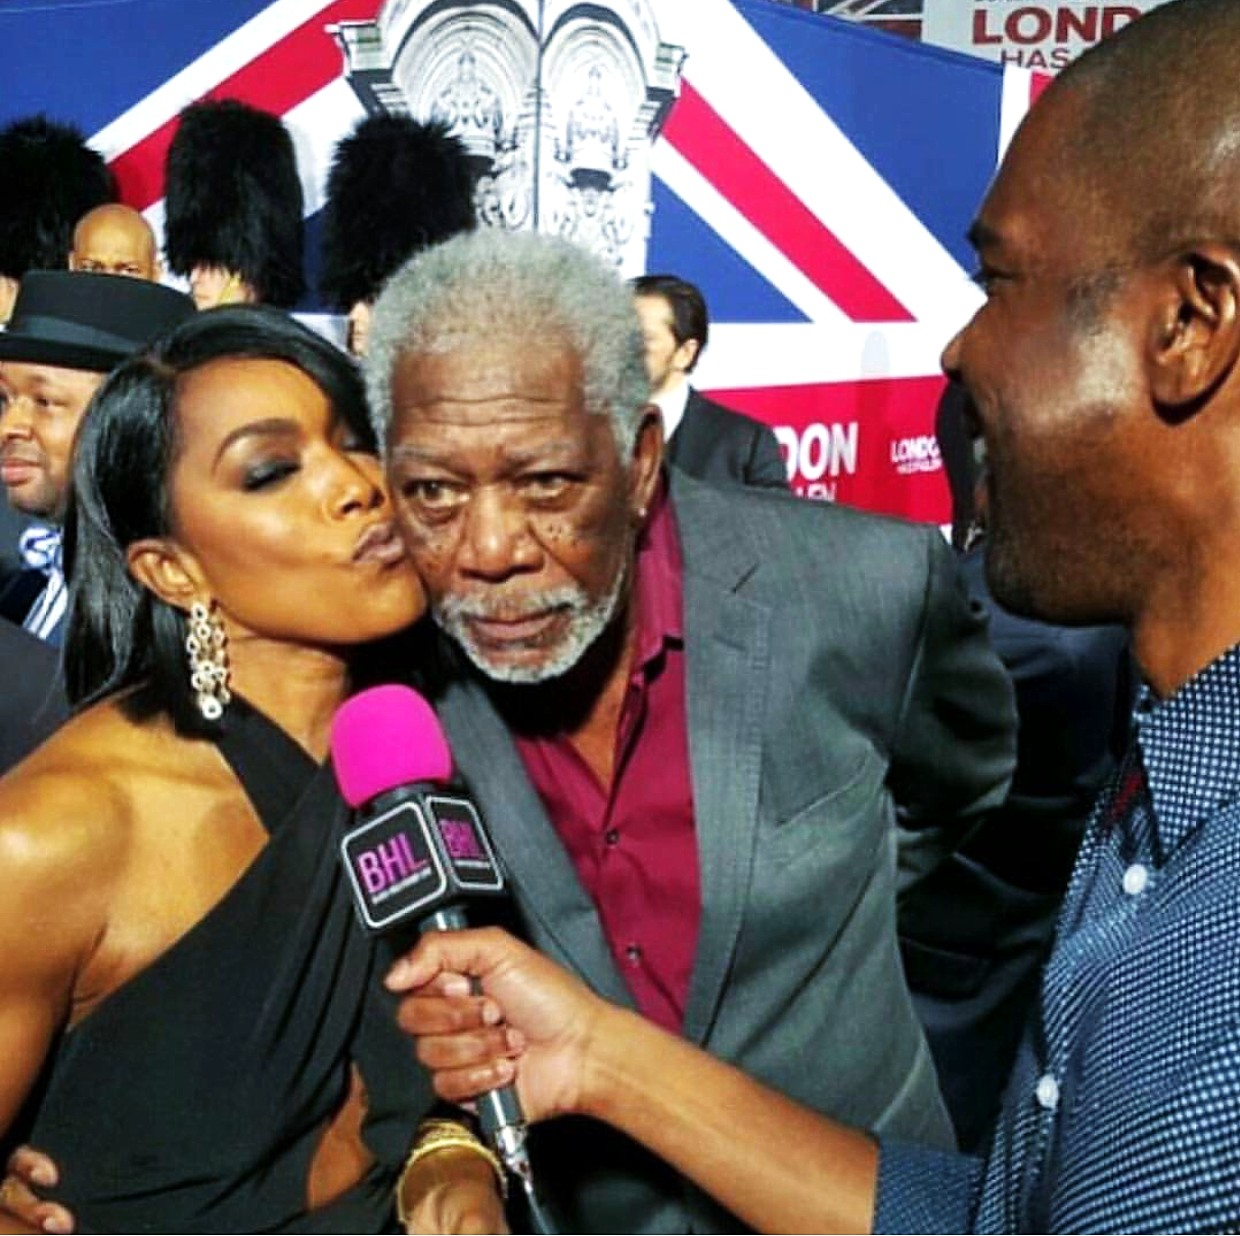 London Has Fallen, Angela Bassett, Morgan Freeman